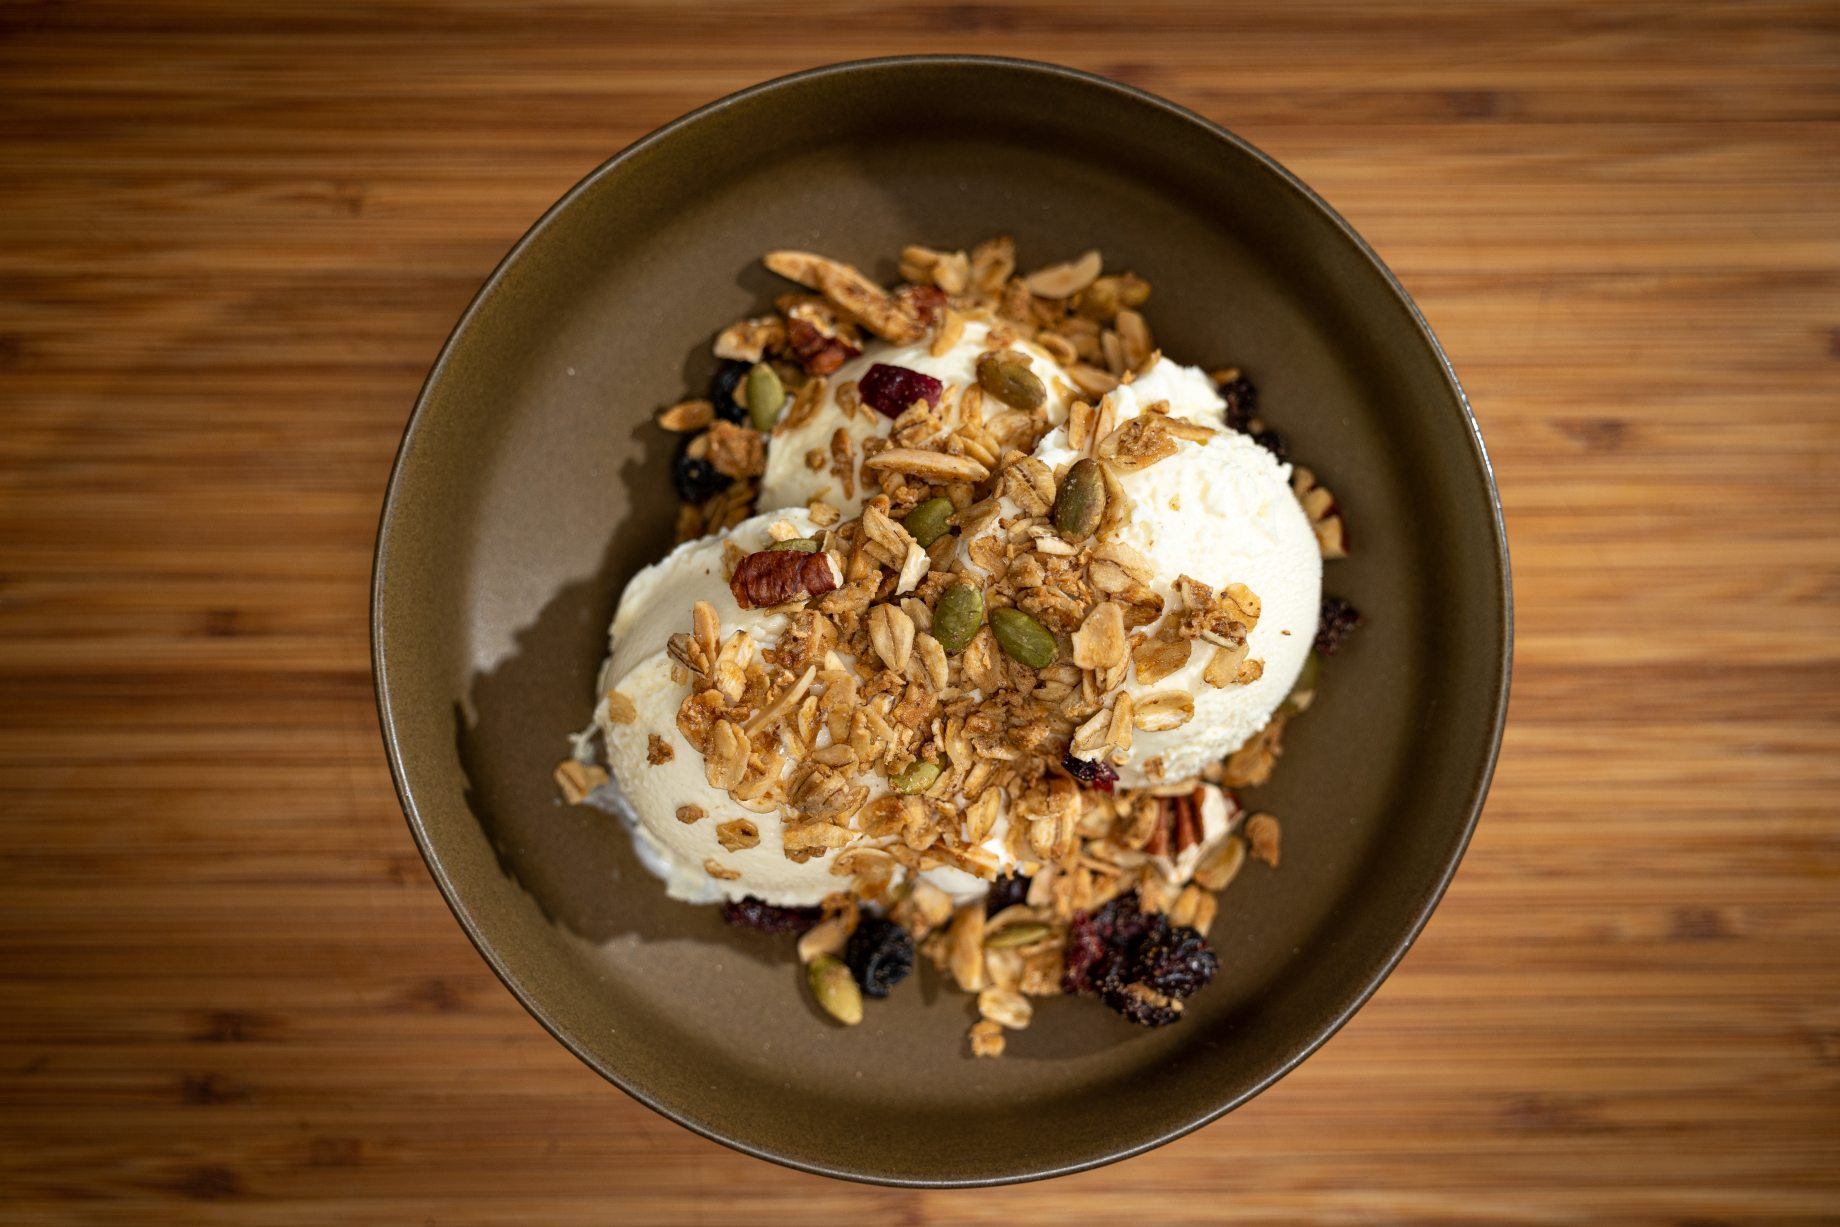 Reloaded granola sprinkled on top of vanilla ice cream in a brown bowl.